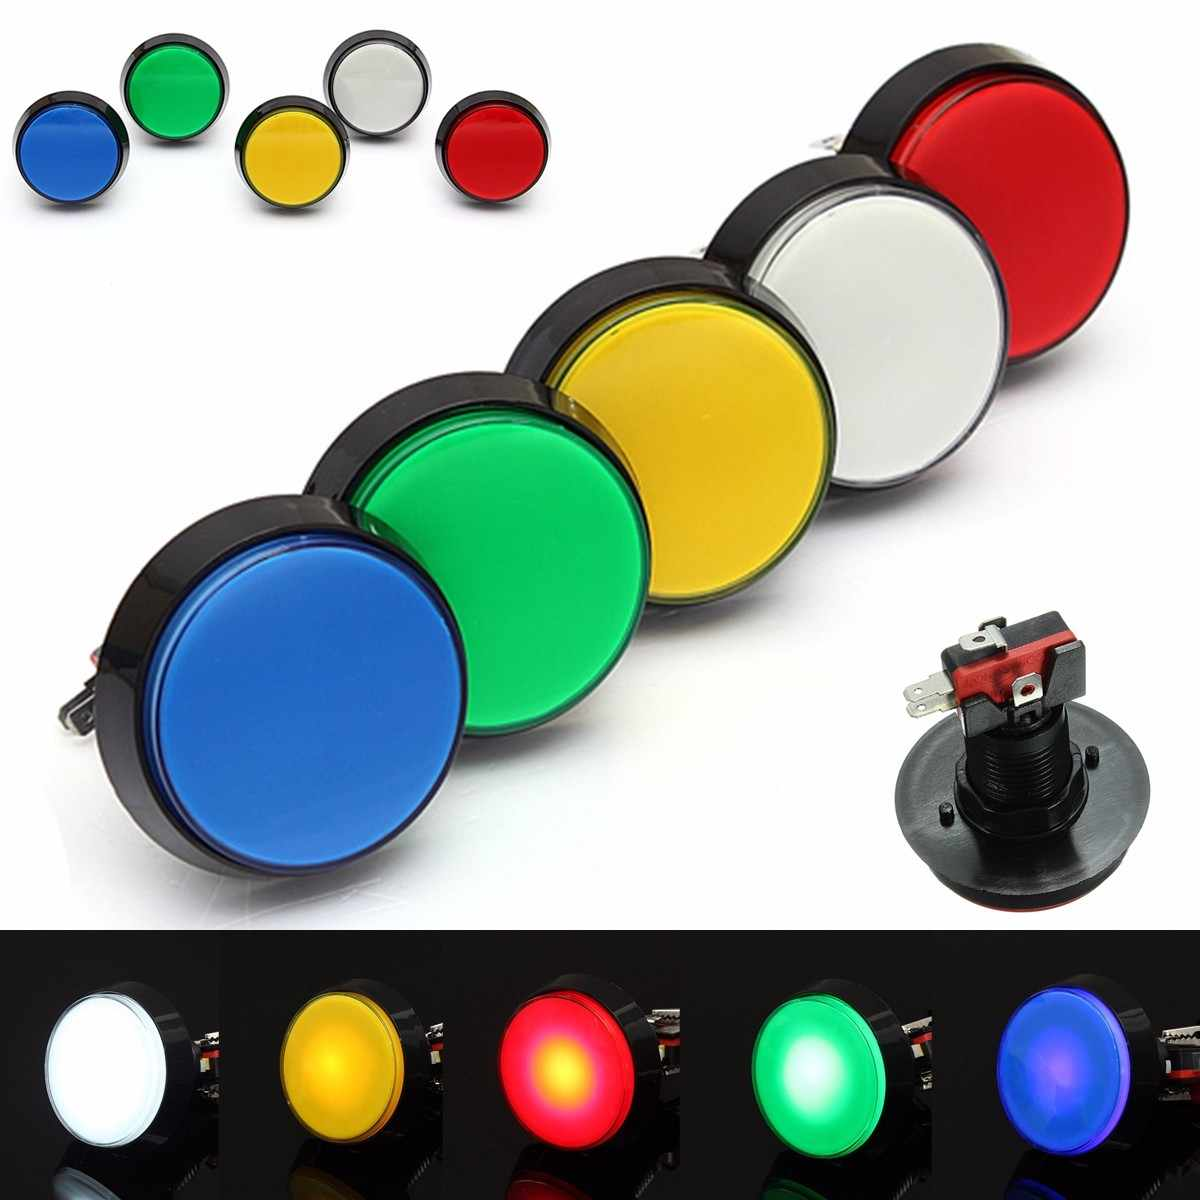 Arcade Button 5 Colors LED Light Lamp 60MM 45MM Big Round Arcade Video Game Player Push Button Switch